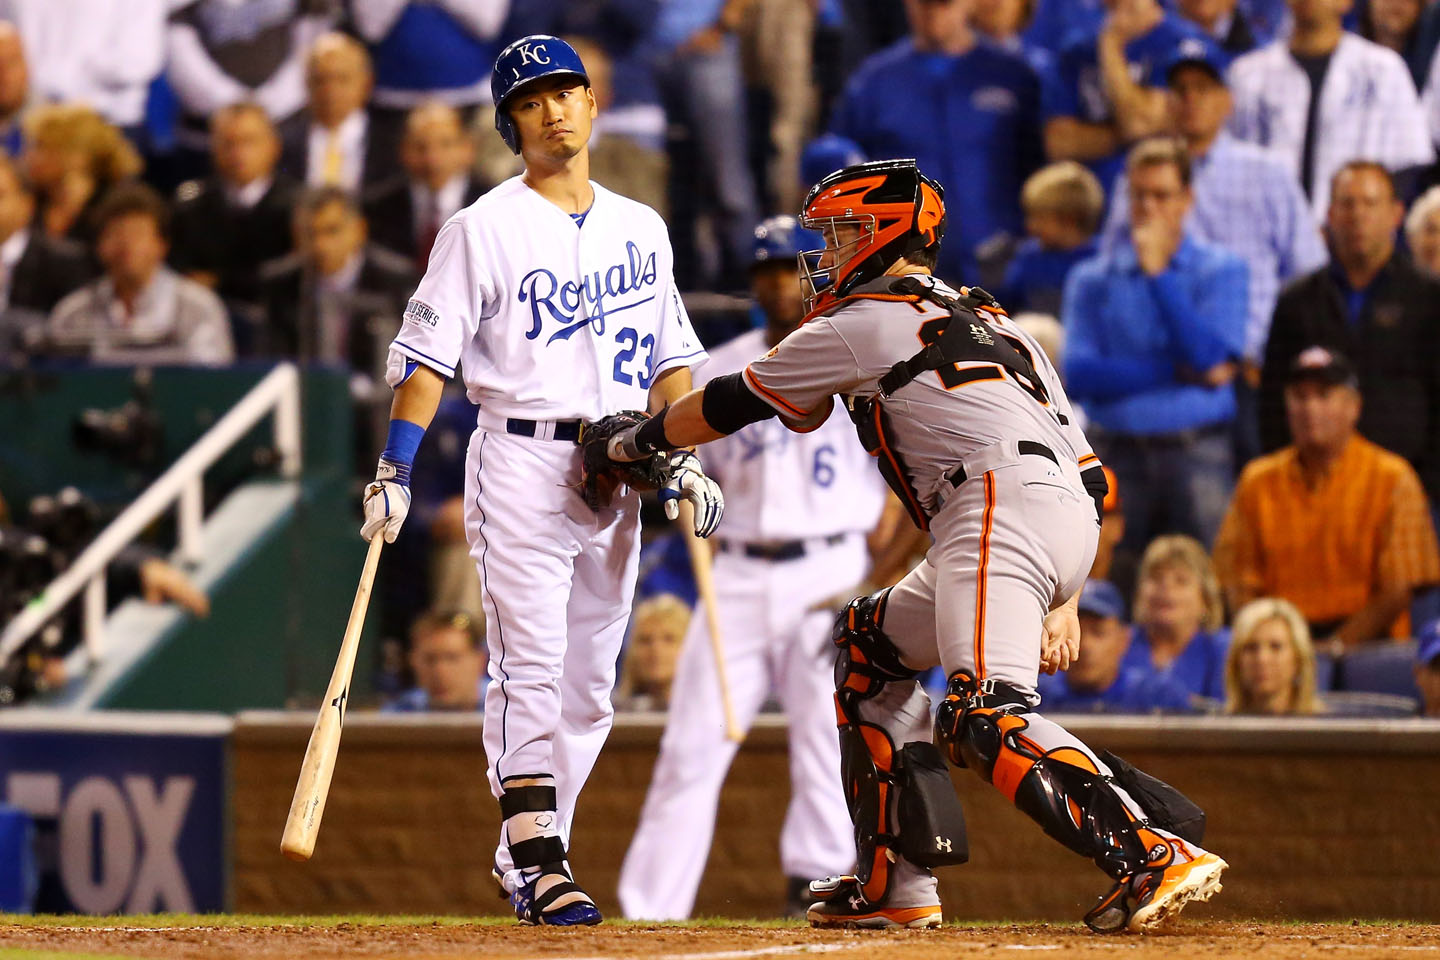 A key out for Bumgarner in the bottom of the third: striking out Nori Aoki with one out and runners on second and third. Bumgarner walked Lorenzo Cain to load the bases before Eric Hosmer grounded out to end the the threat.  (Dilip Vishwanat/Getty Images)